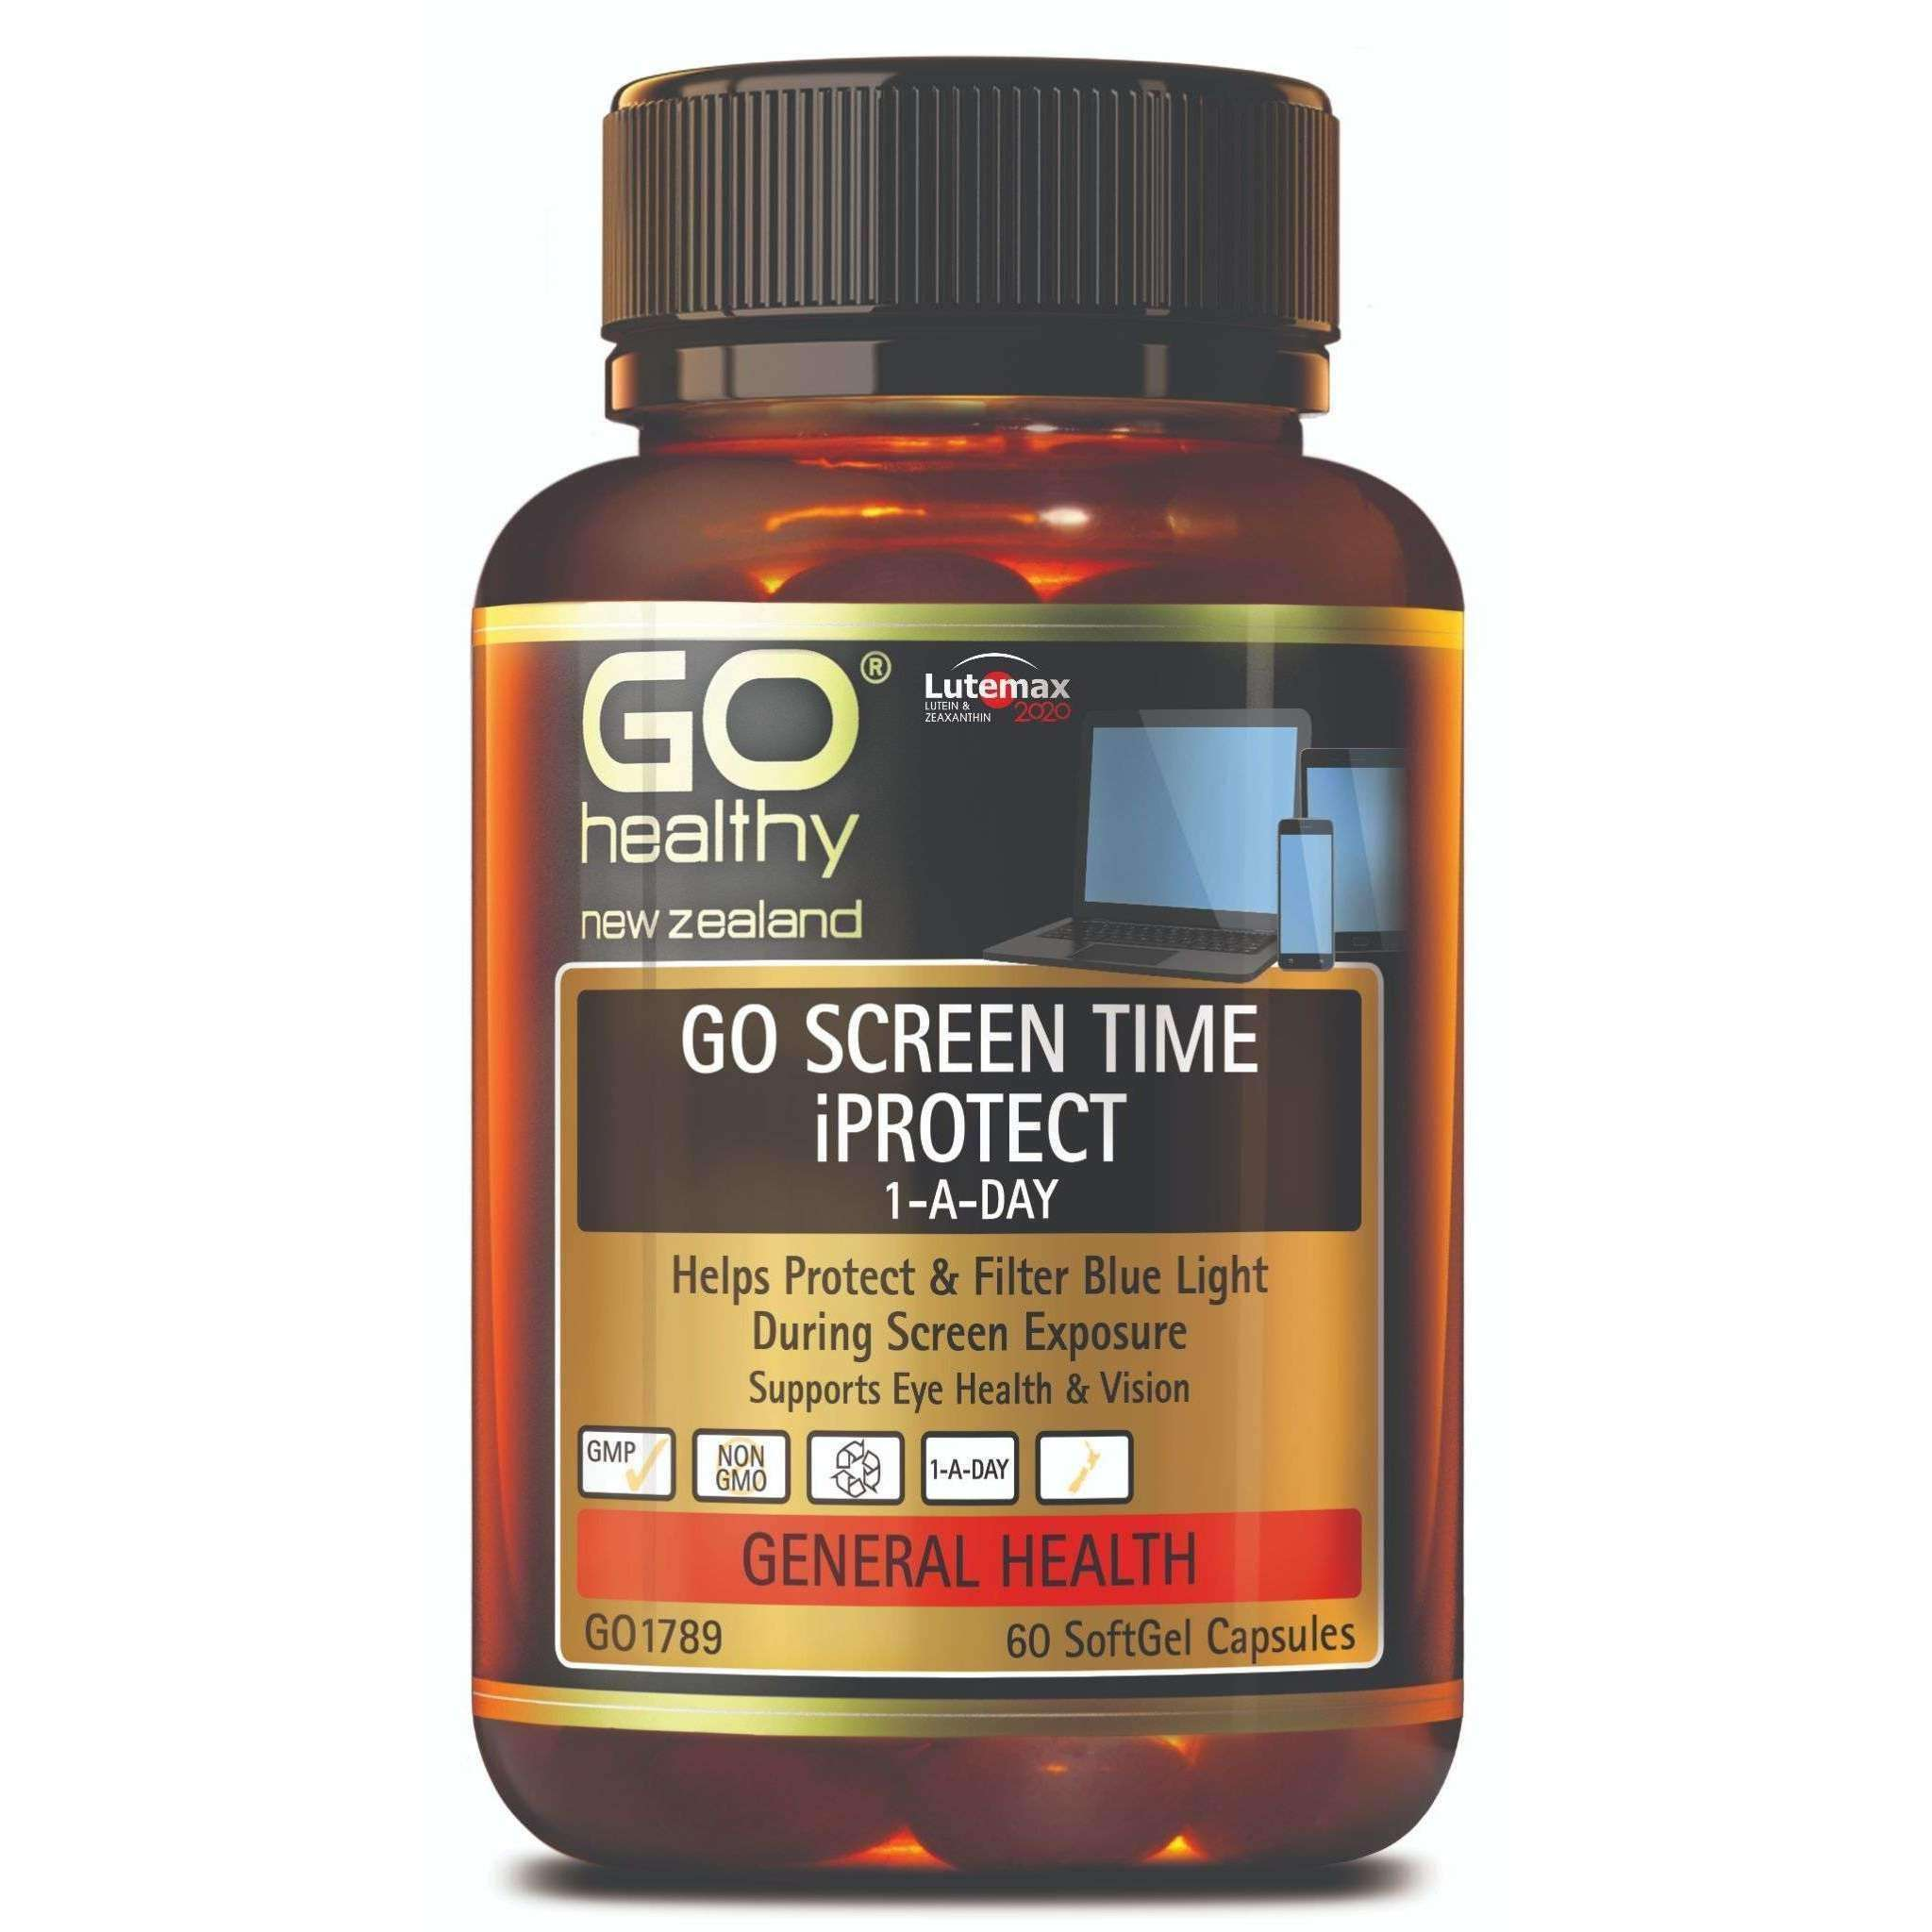 Go Healthy Go Screen Time iProtect 1-A-Day